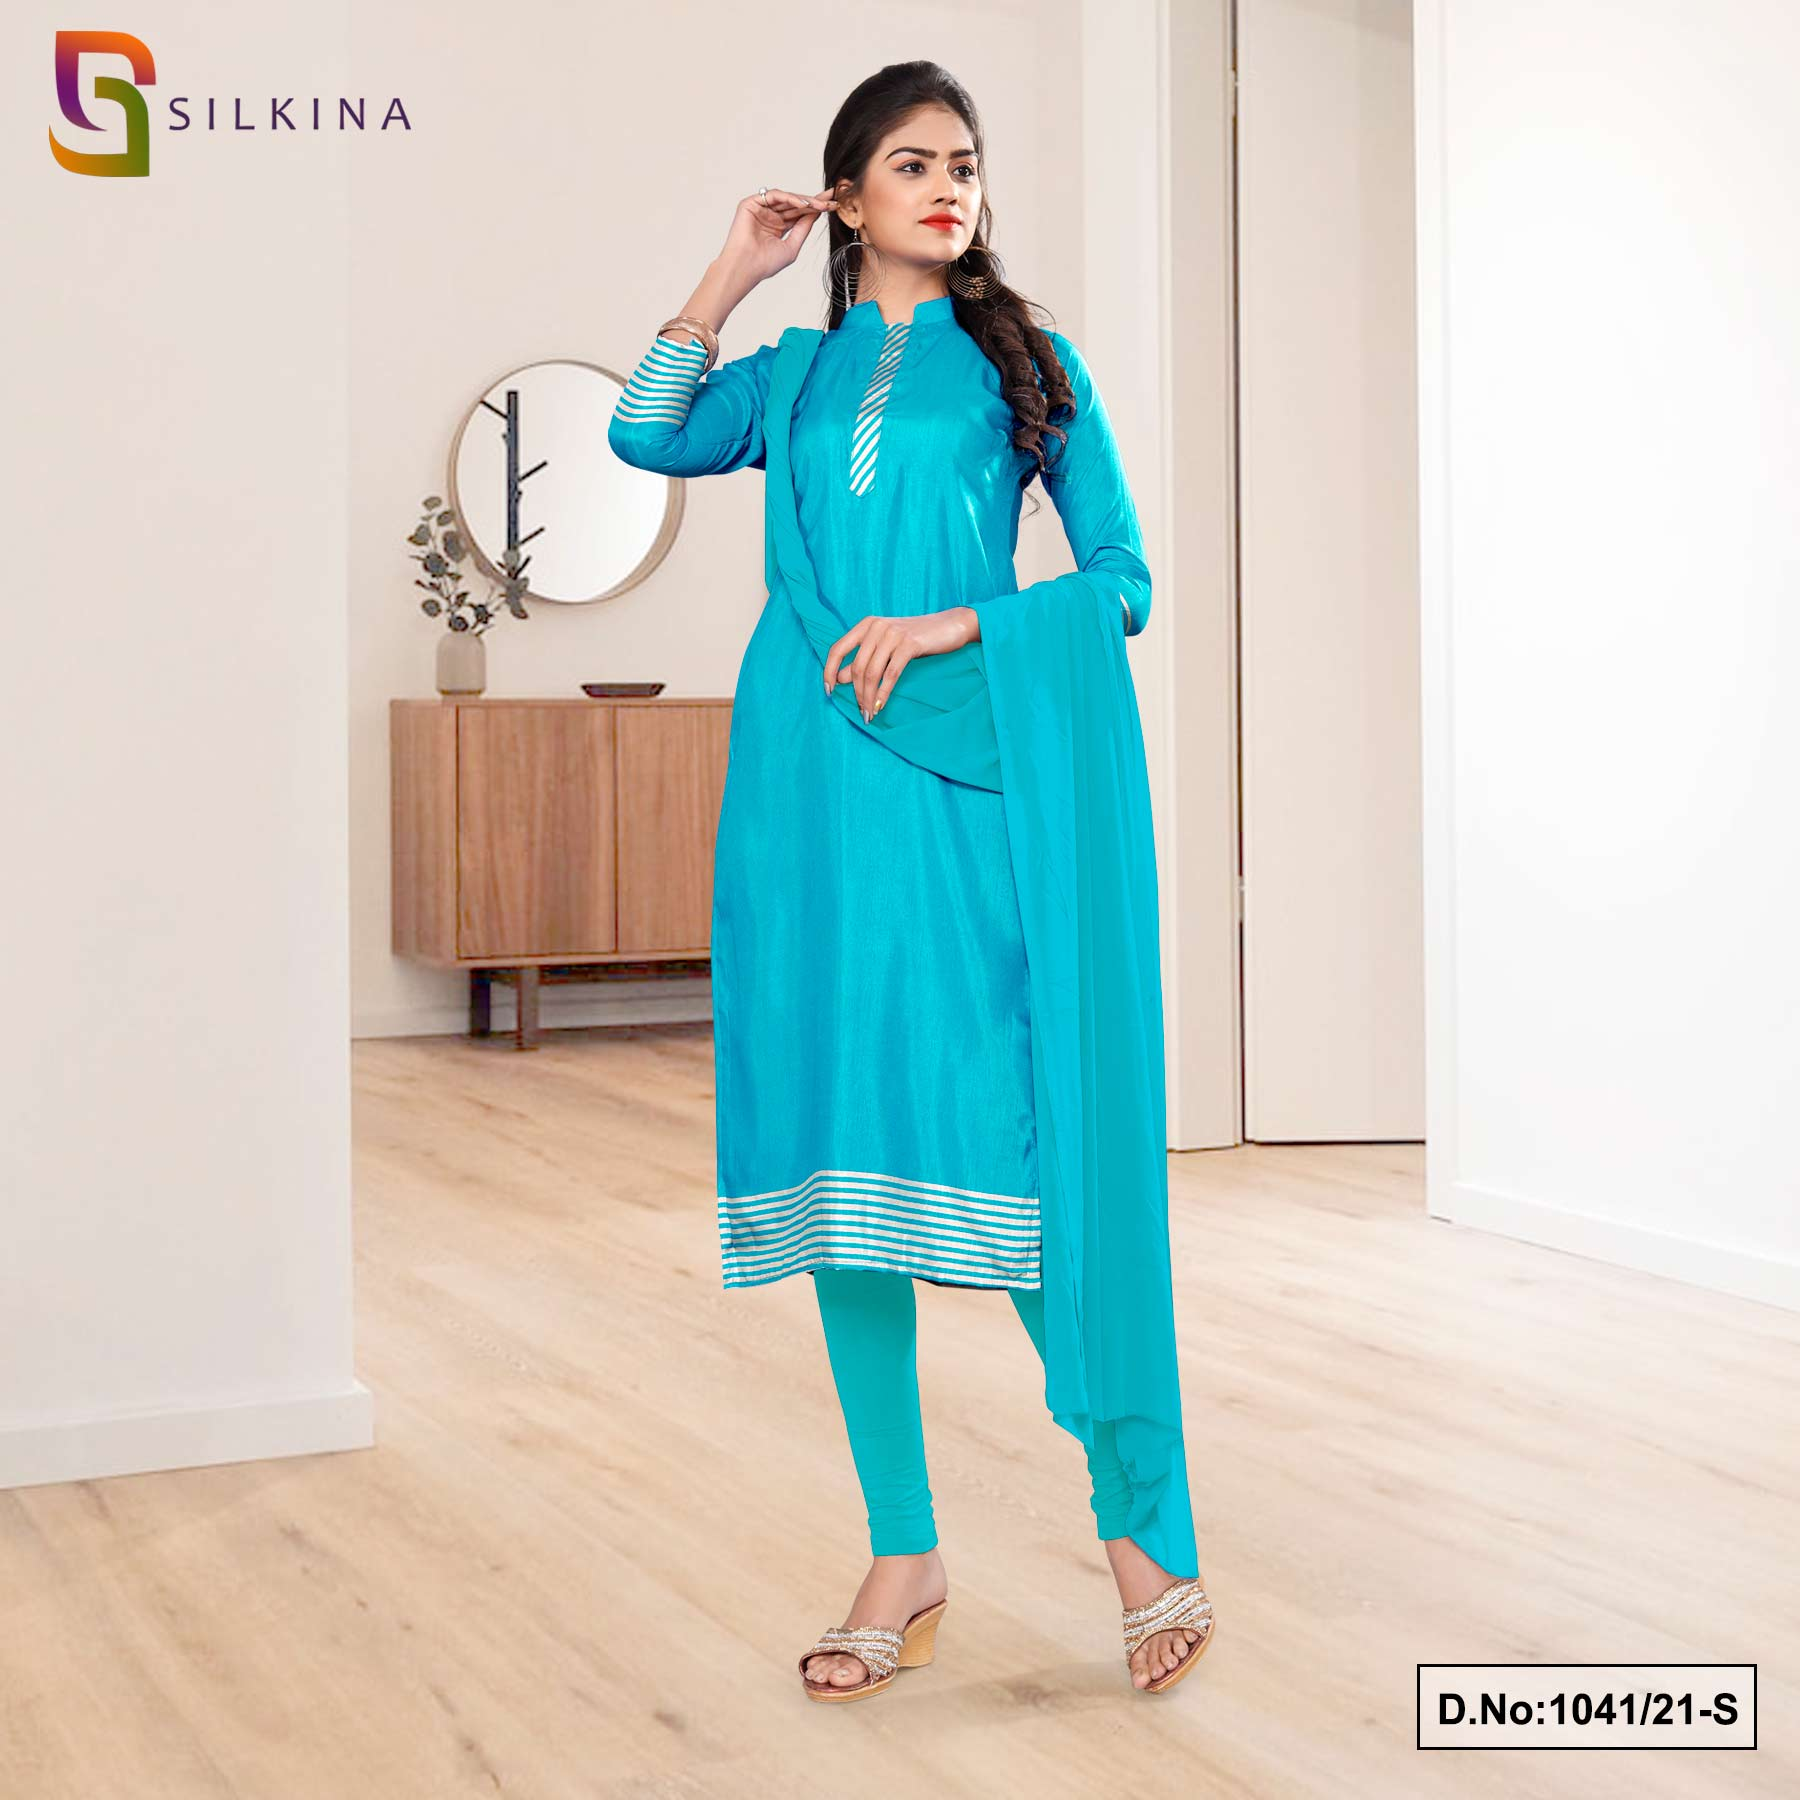 Peacock Blue Plain Border Premium Polycotton Raw Silk Salwar Kameez for Front Office Uniform Sarees